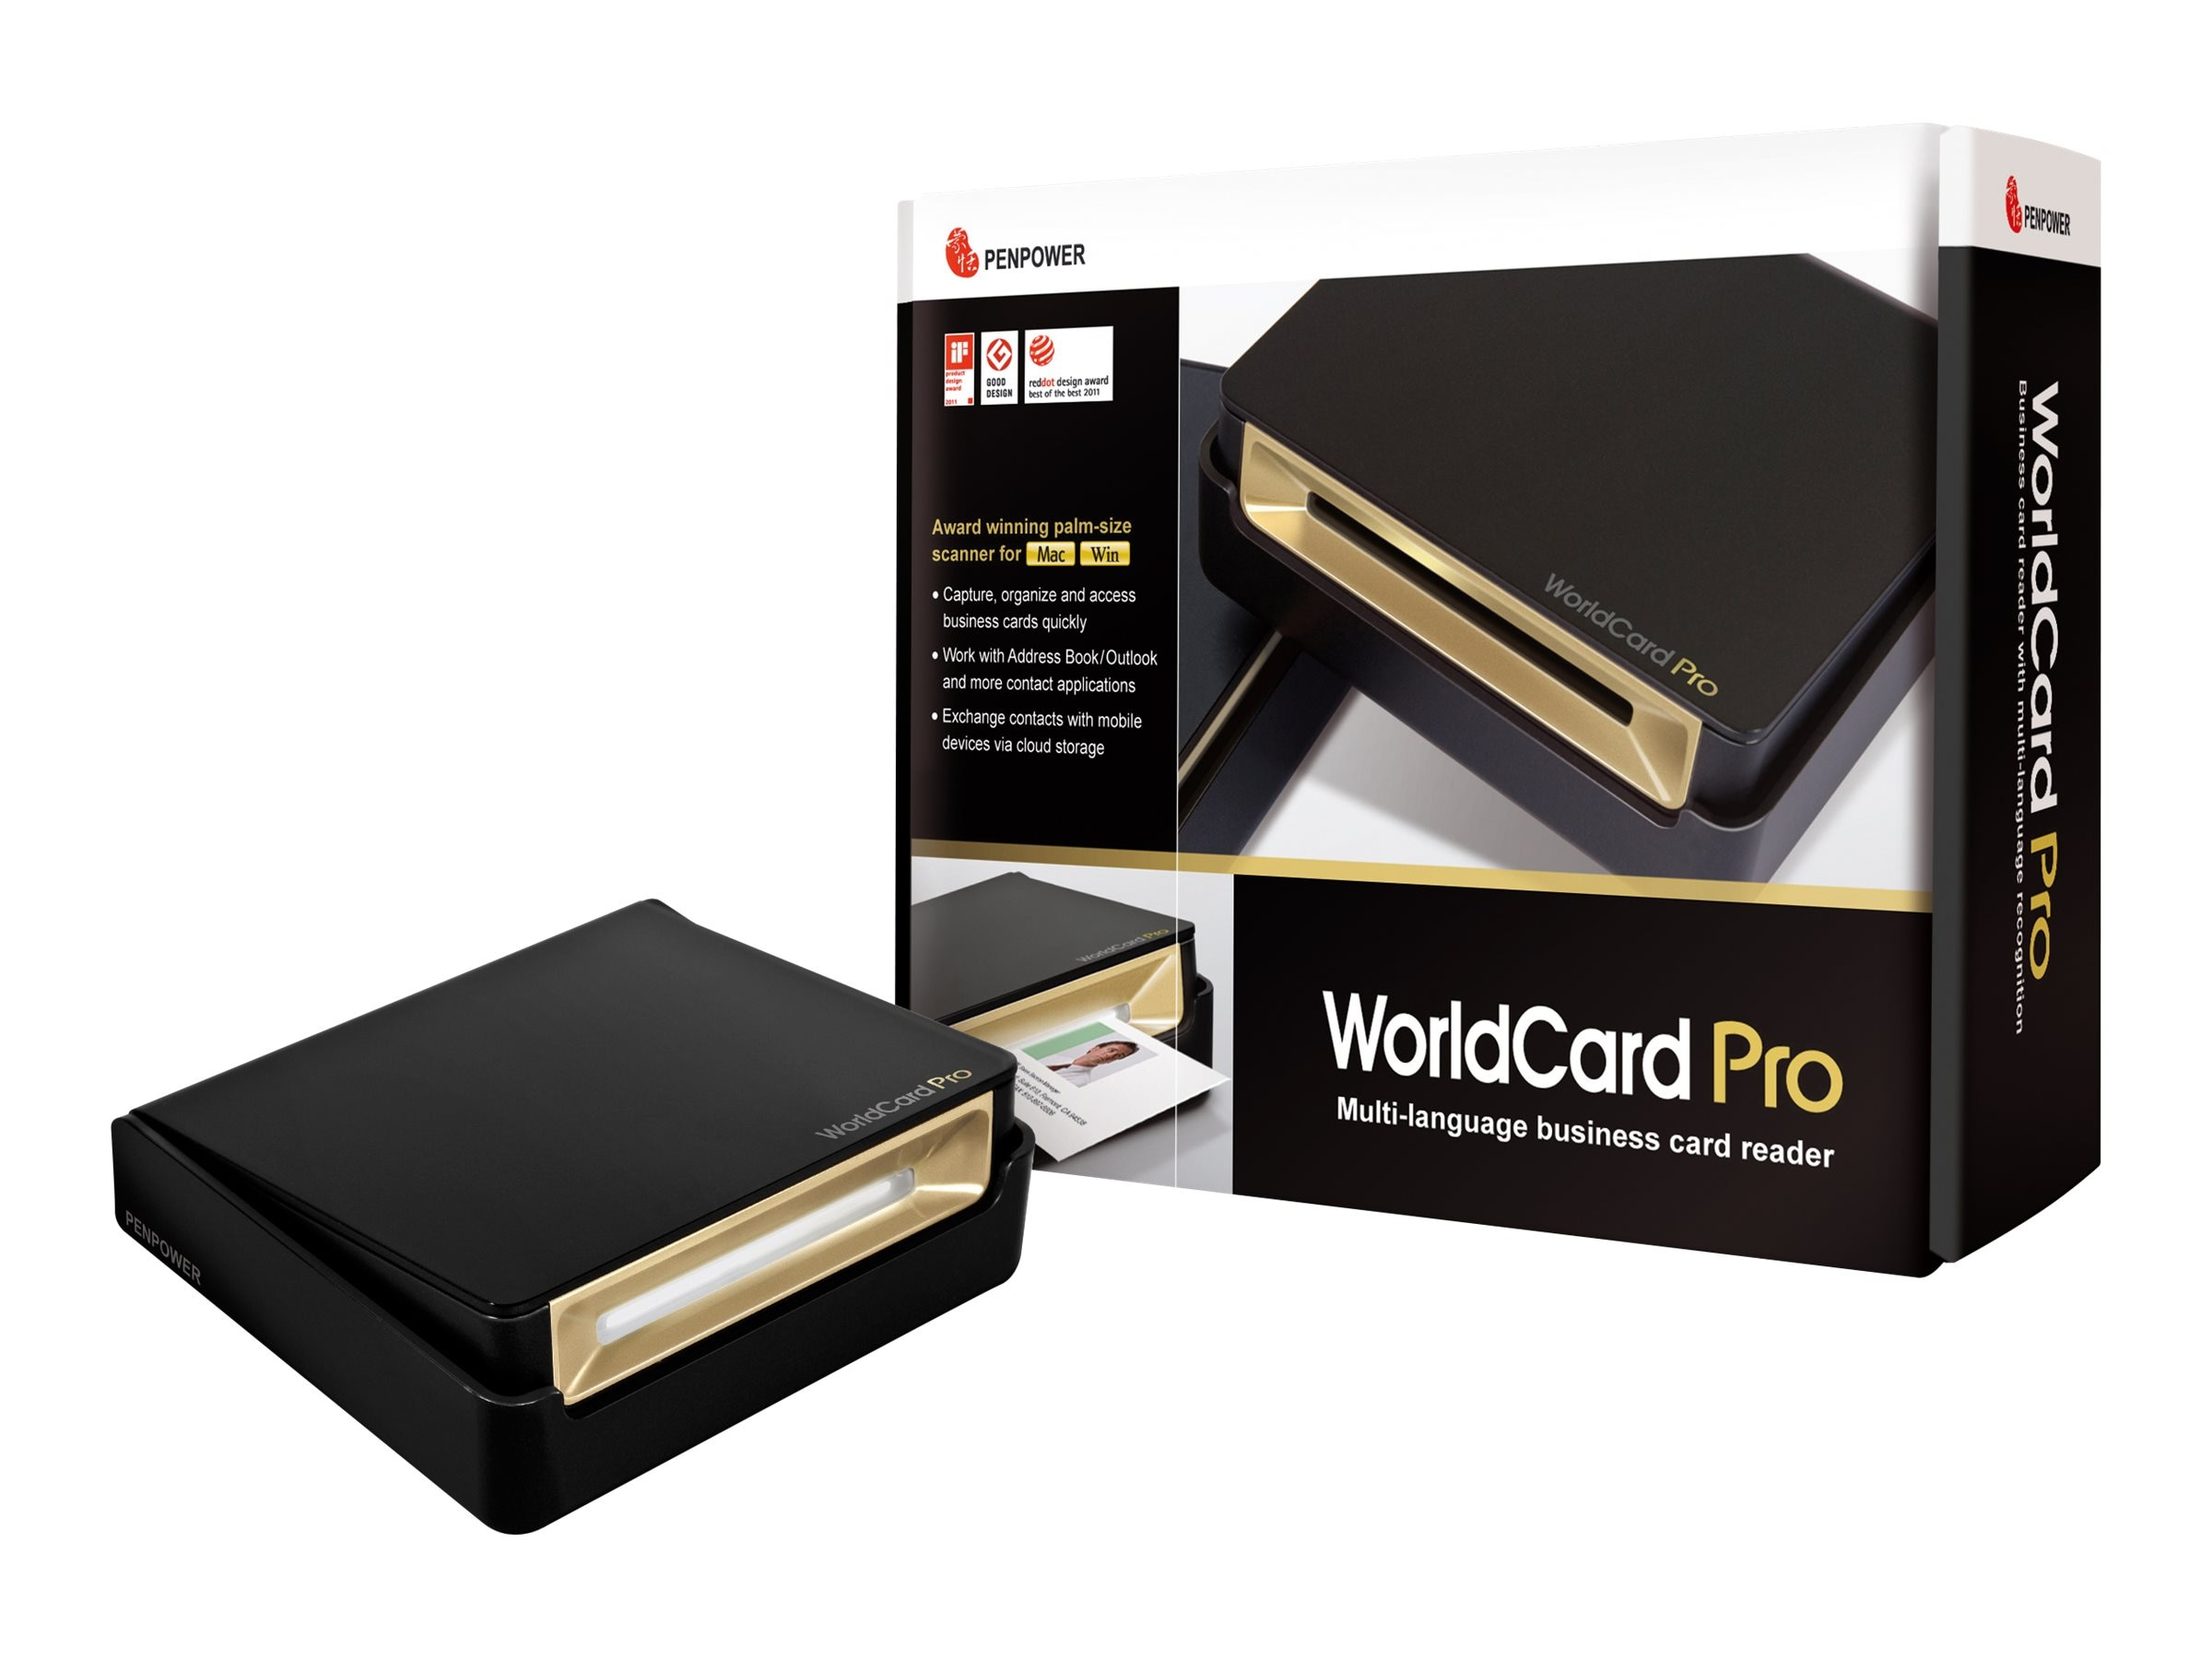 Penpower WorldCard Pro Card Scanner, WCUPRO1EN